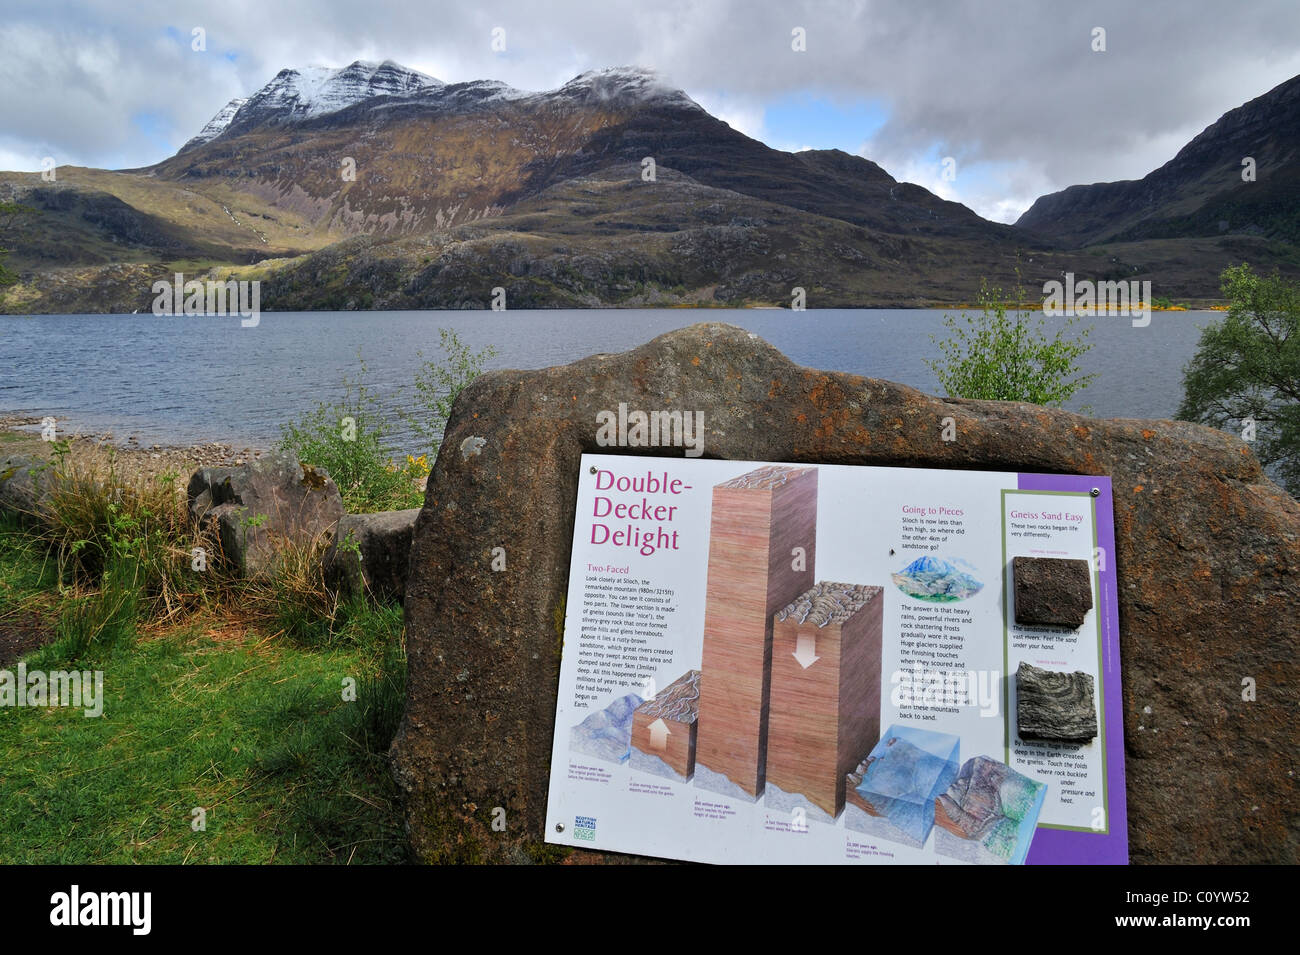 Loch Maree and information panel about the mountain Slioch in Wester Ross, Highlands, Scotland, UK Stock Photo